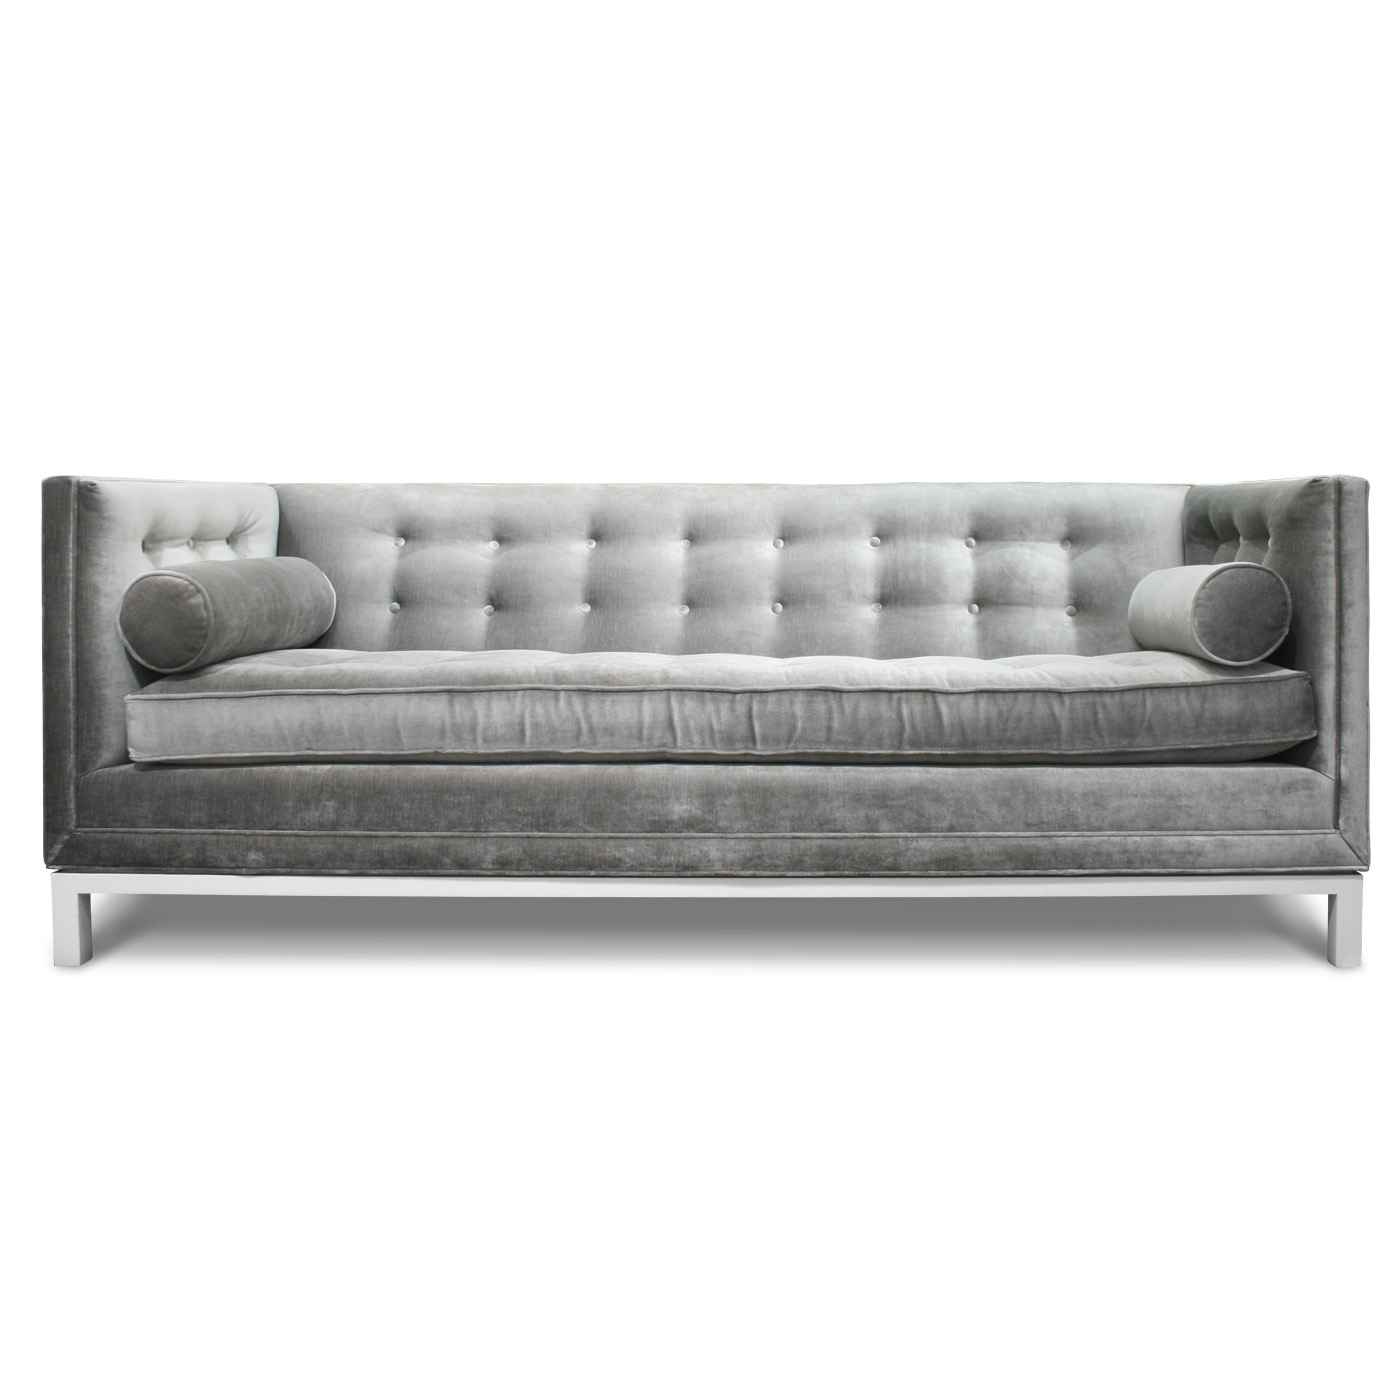 Designs 4 Less: Jonathan Adler Lampert Sofa Vs Z Gallerie